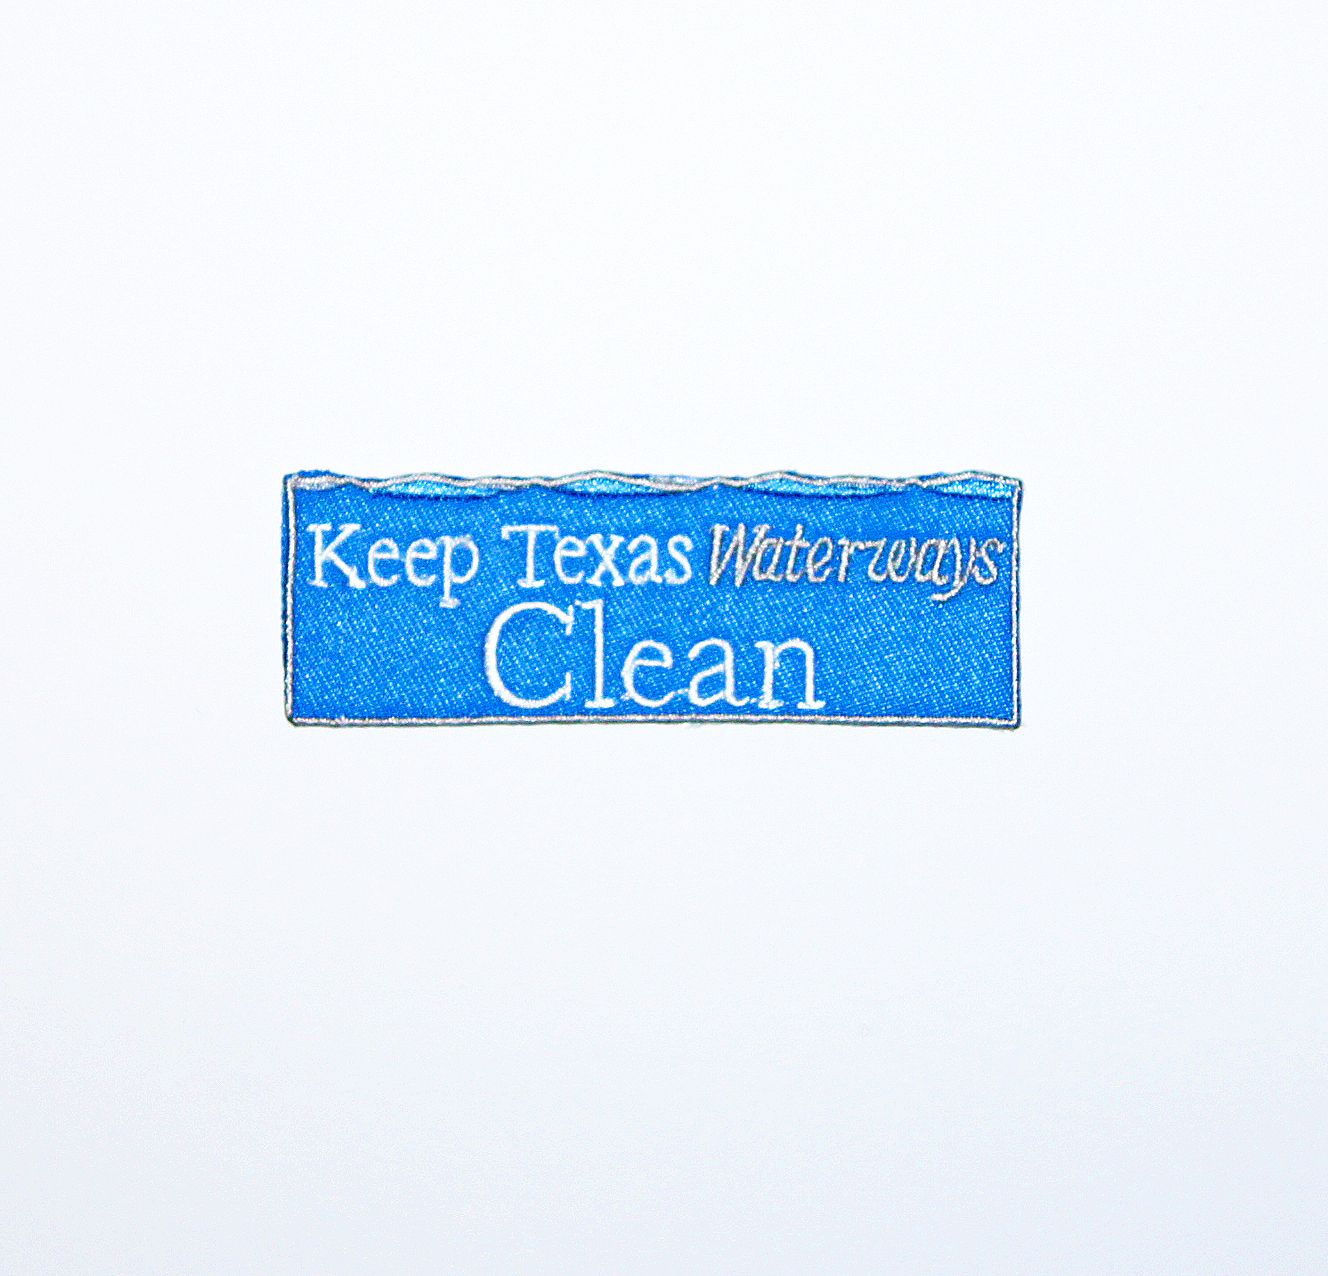 Keep Texas Waterways Clean